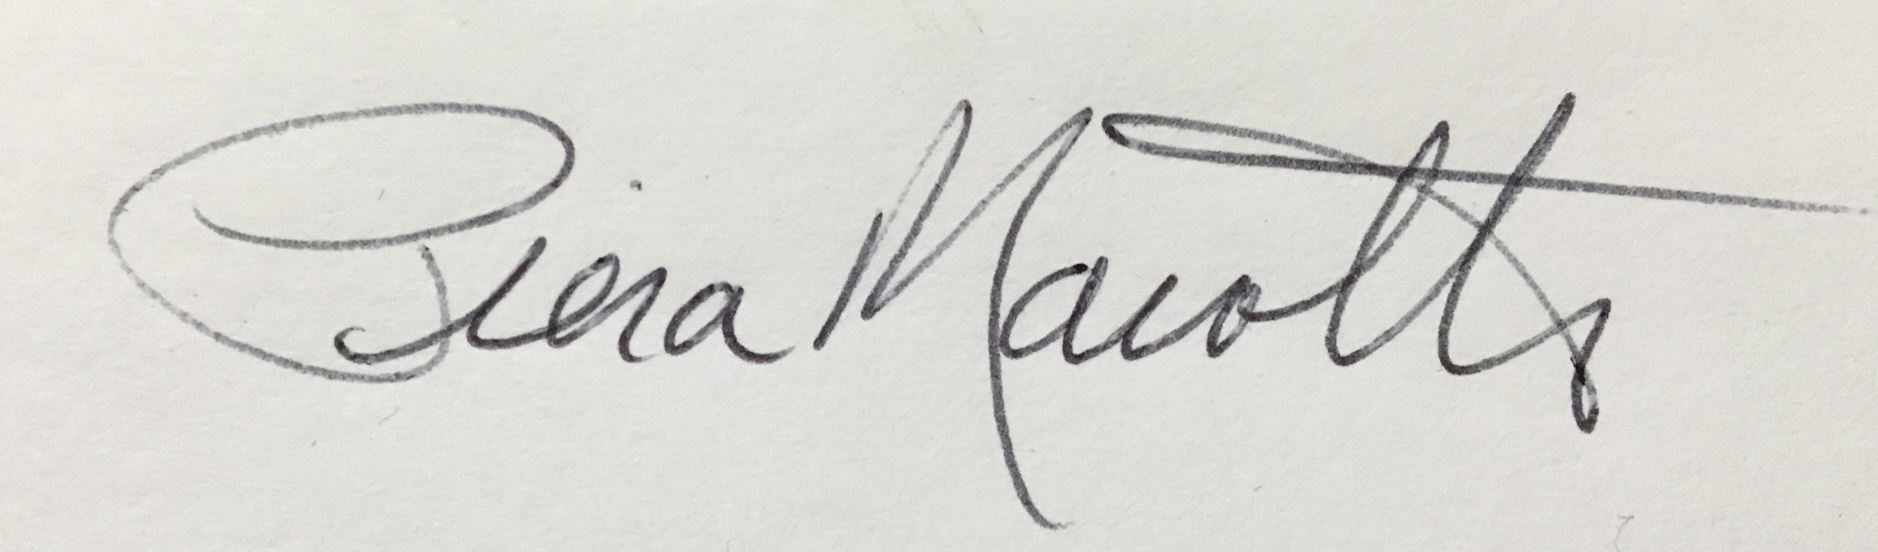 Piera Marotto's Signature